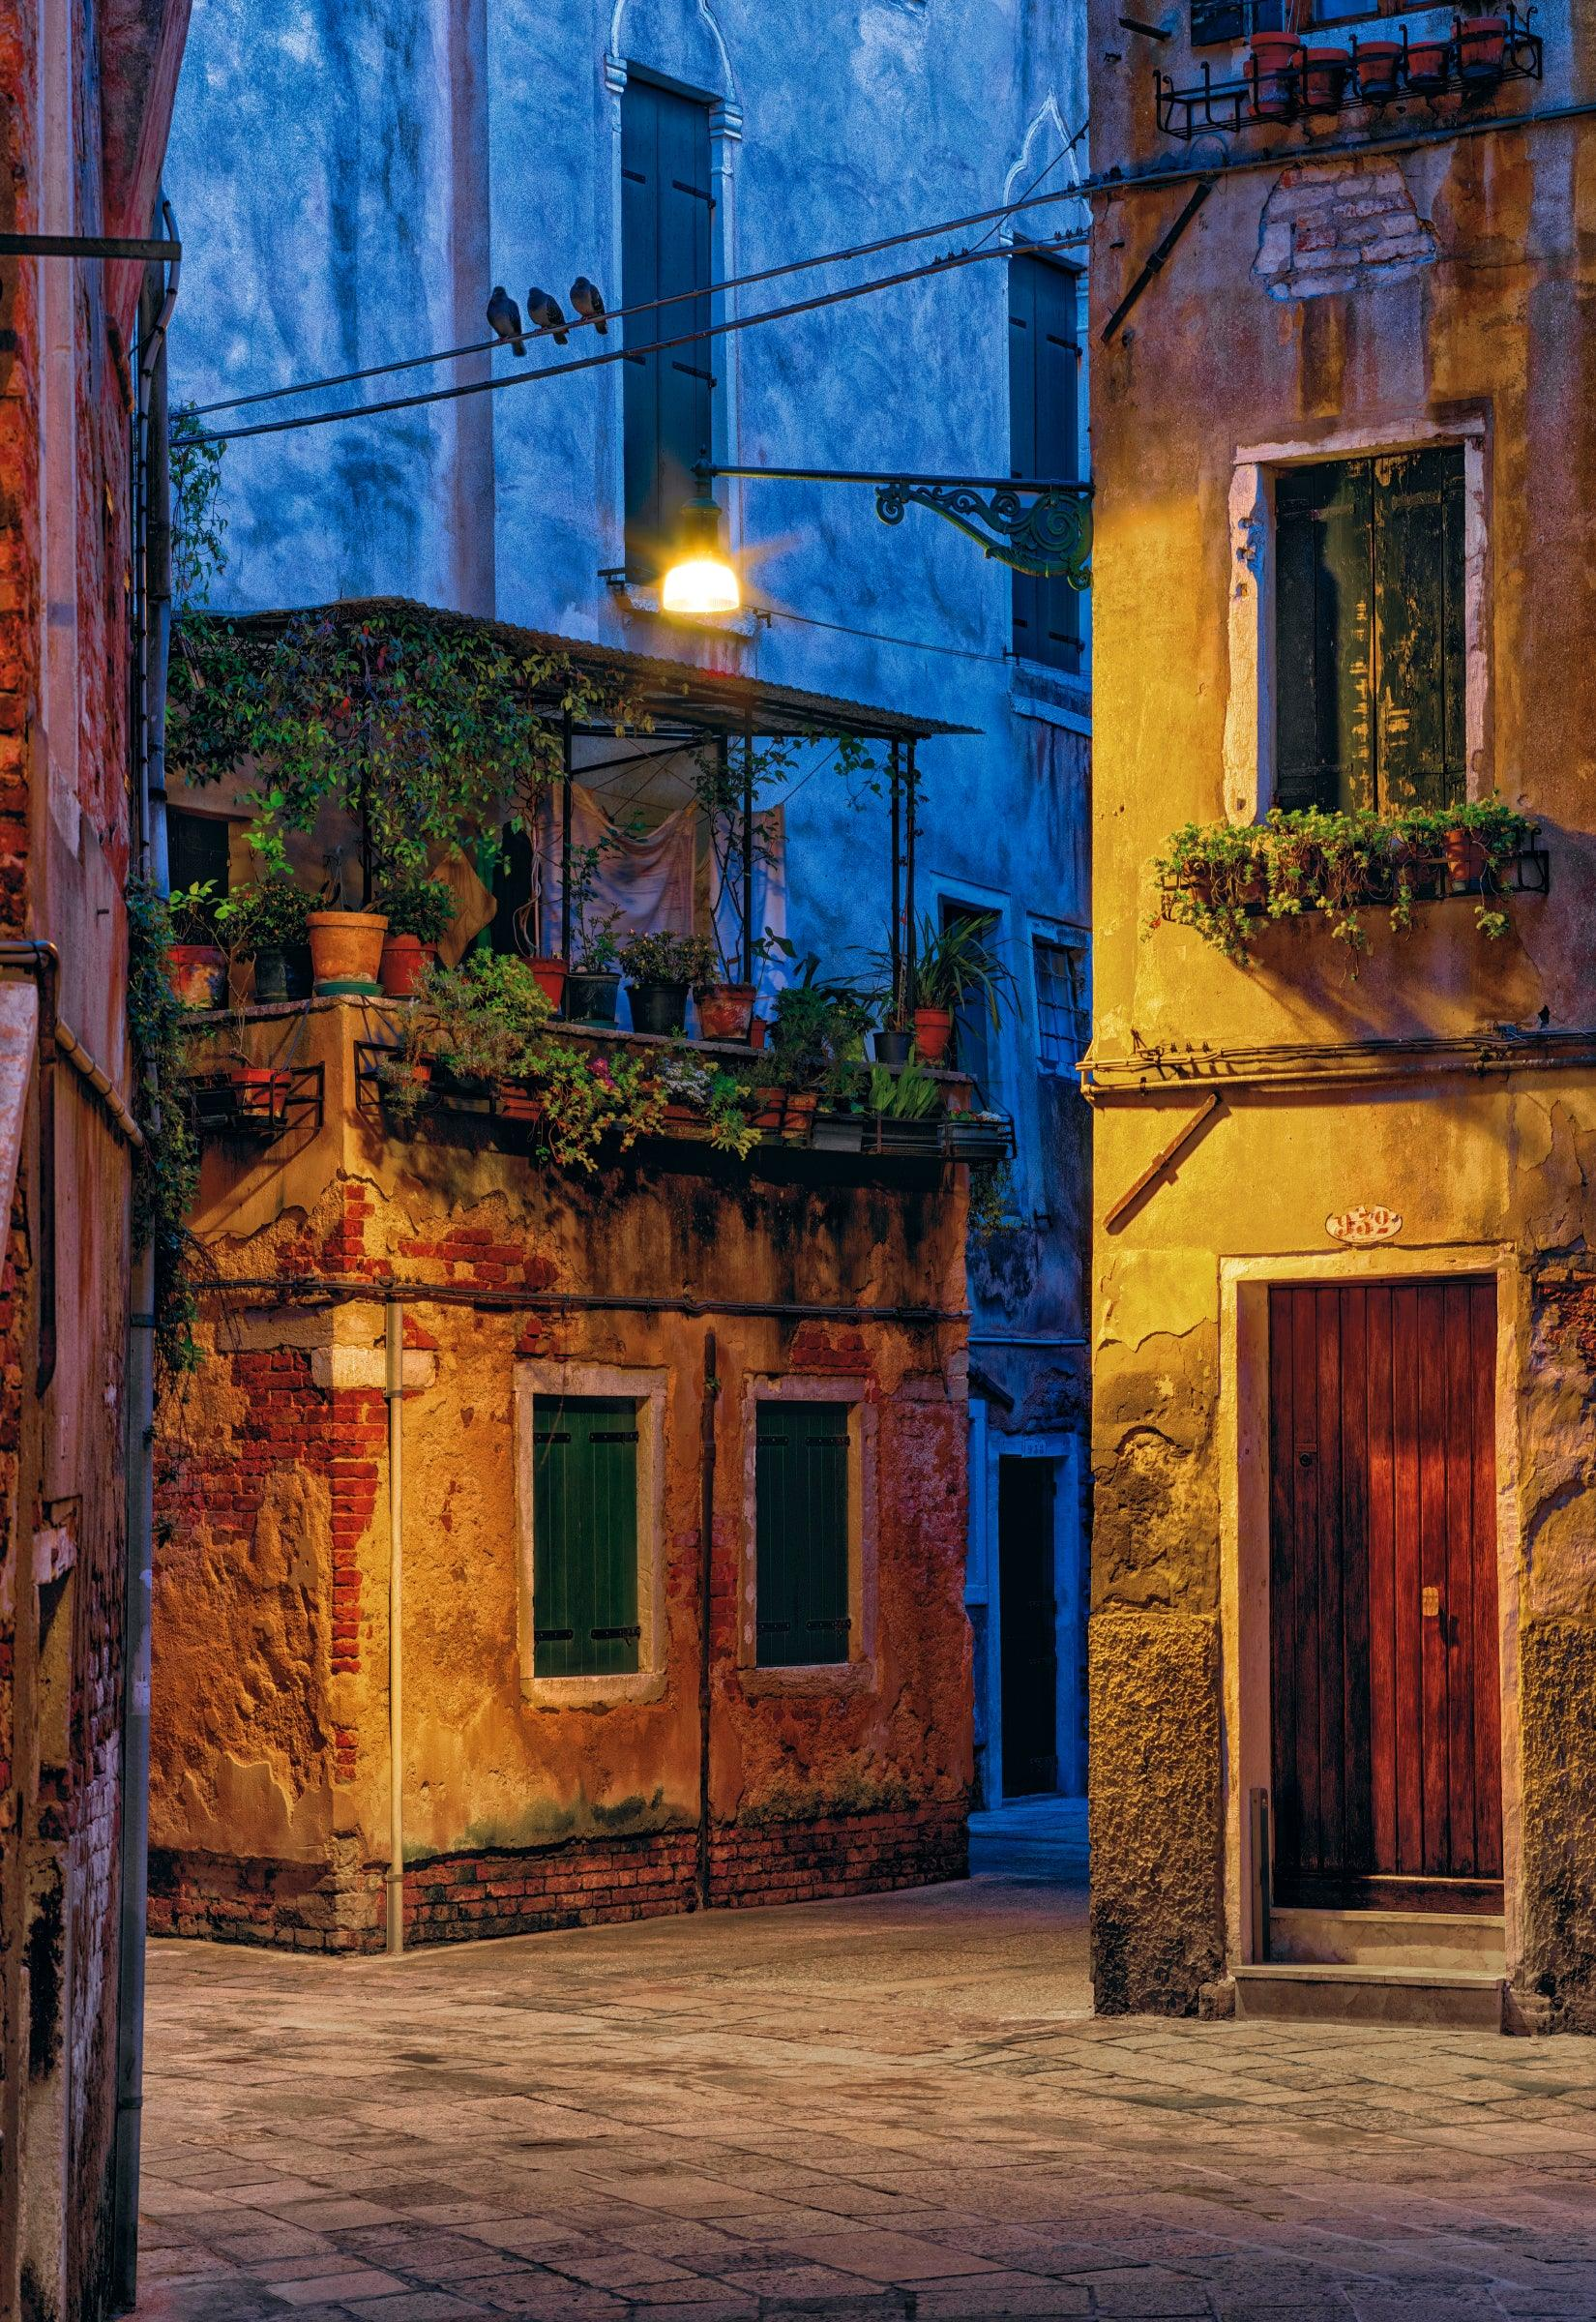 Rustic old facade of buildings covered with plants in Venice Italy at dawn